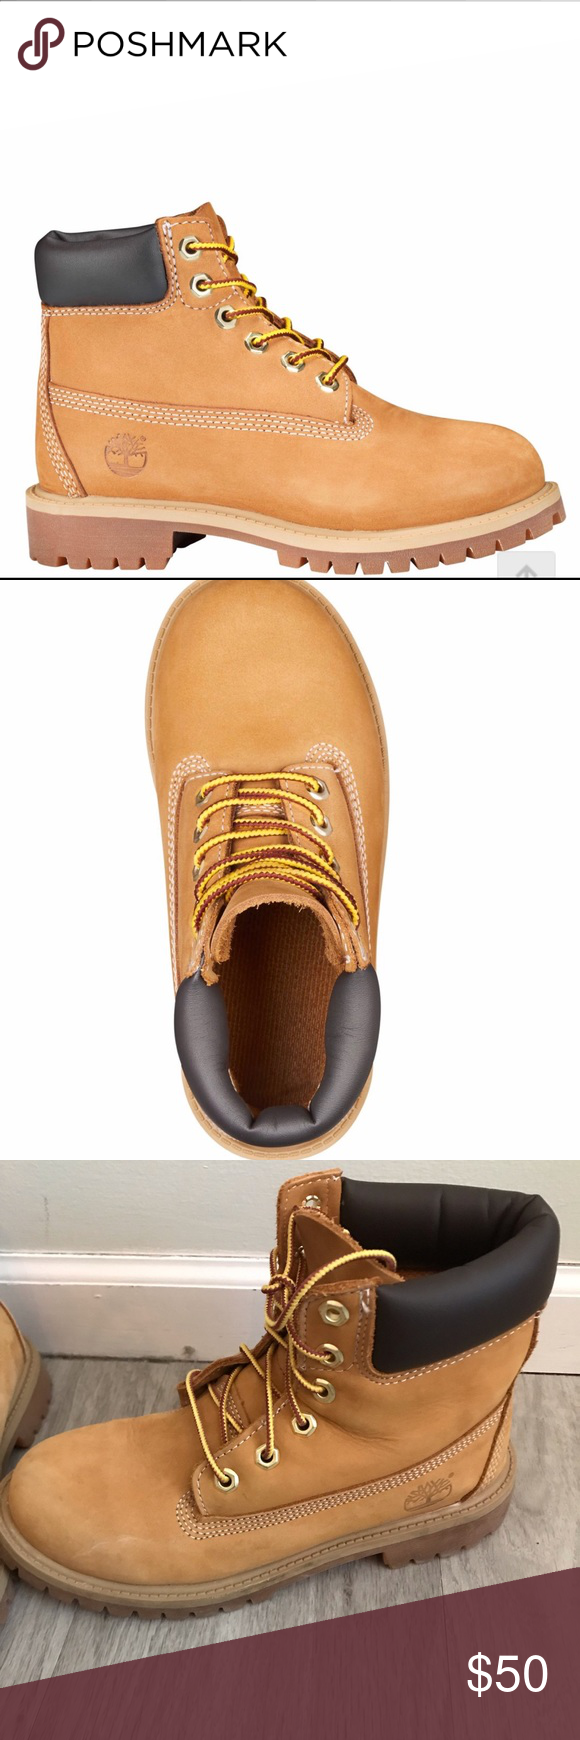 Timberland Shoes Boots